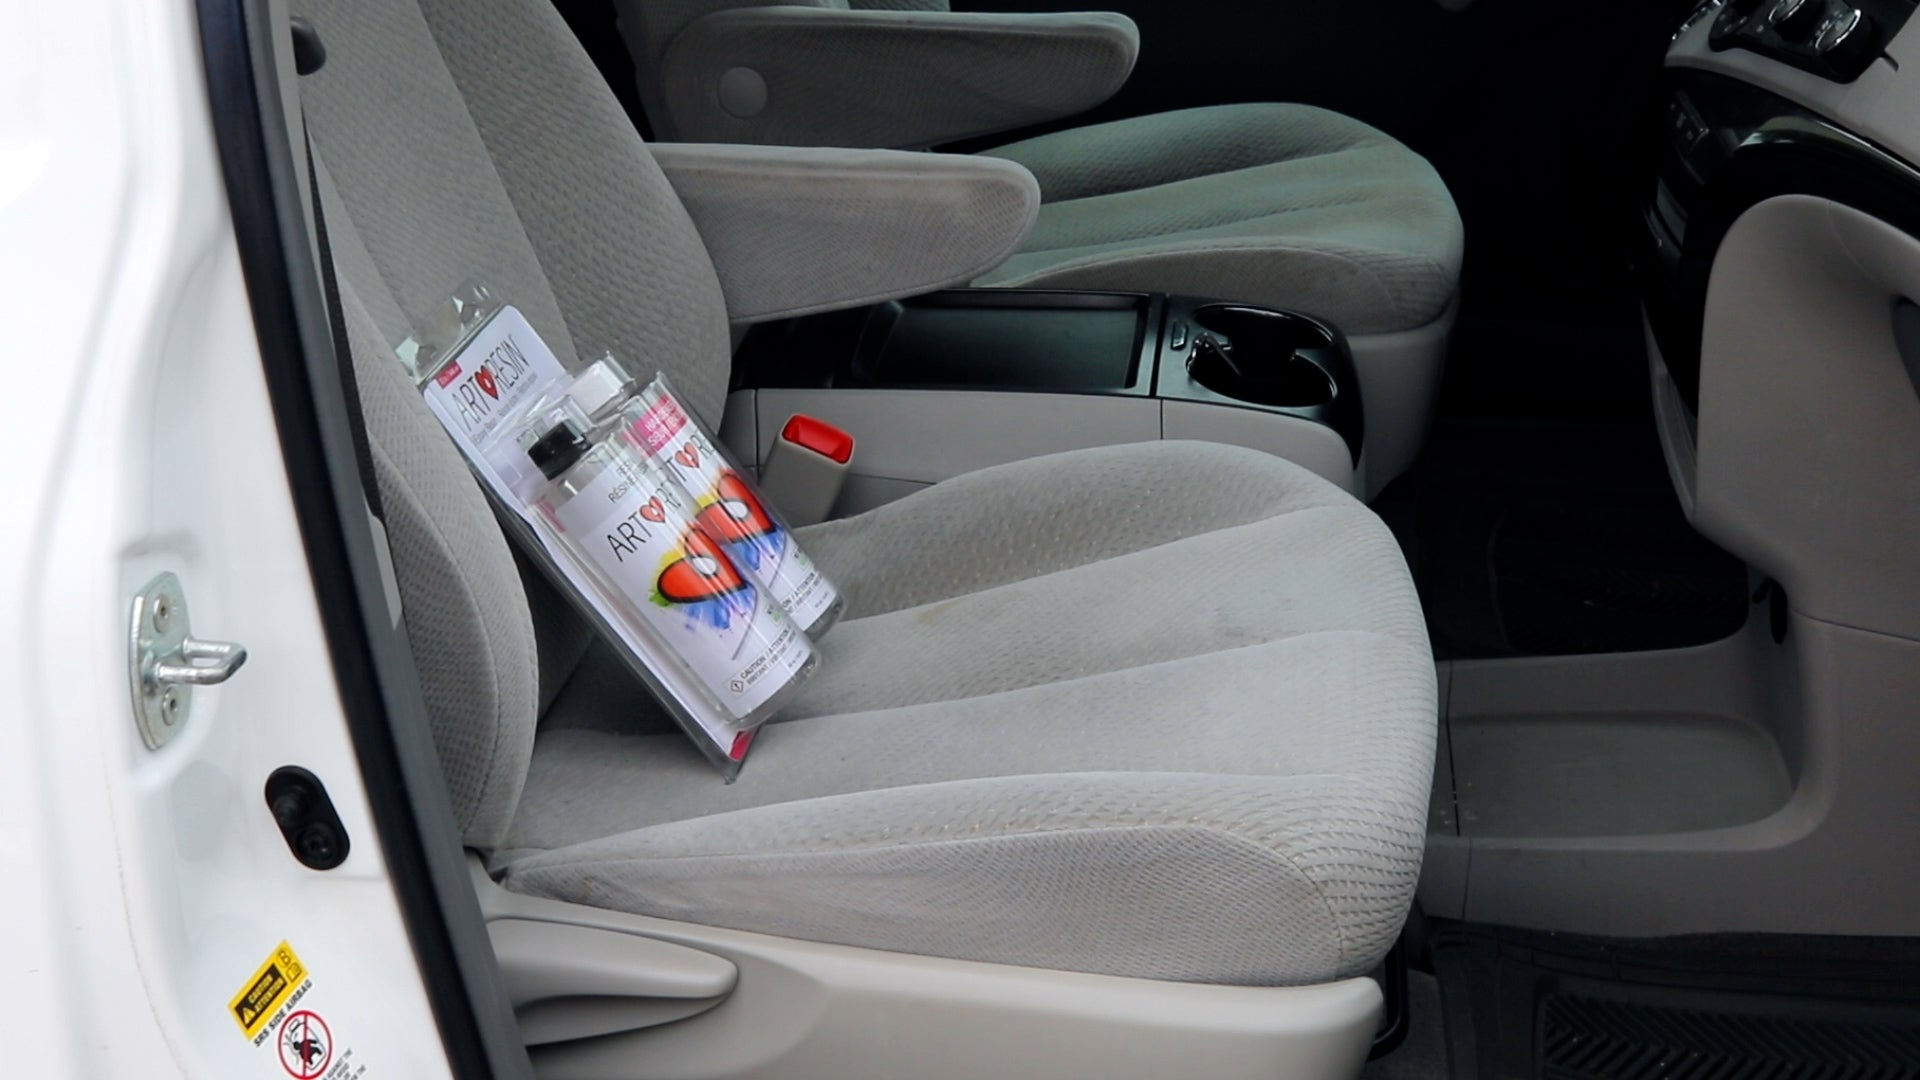 let resin cool down after being in a hot car before you use it